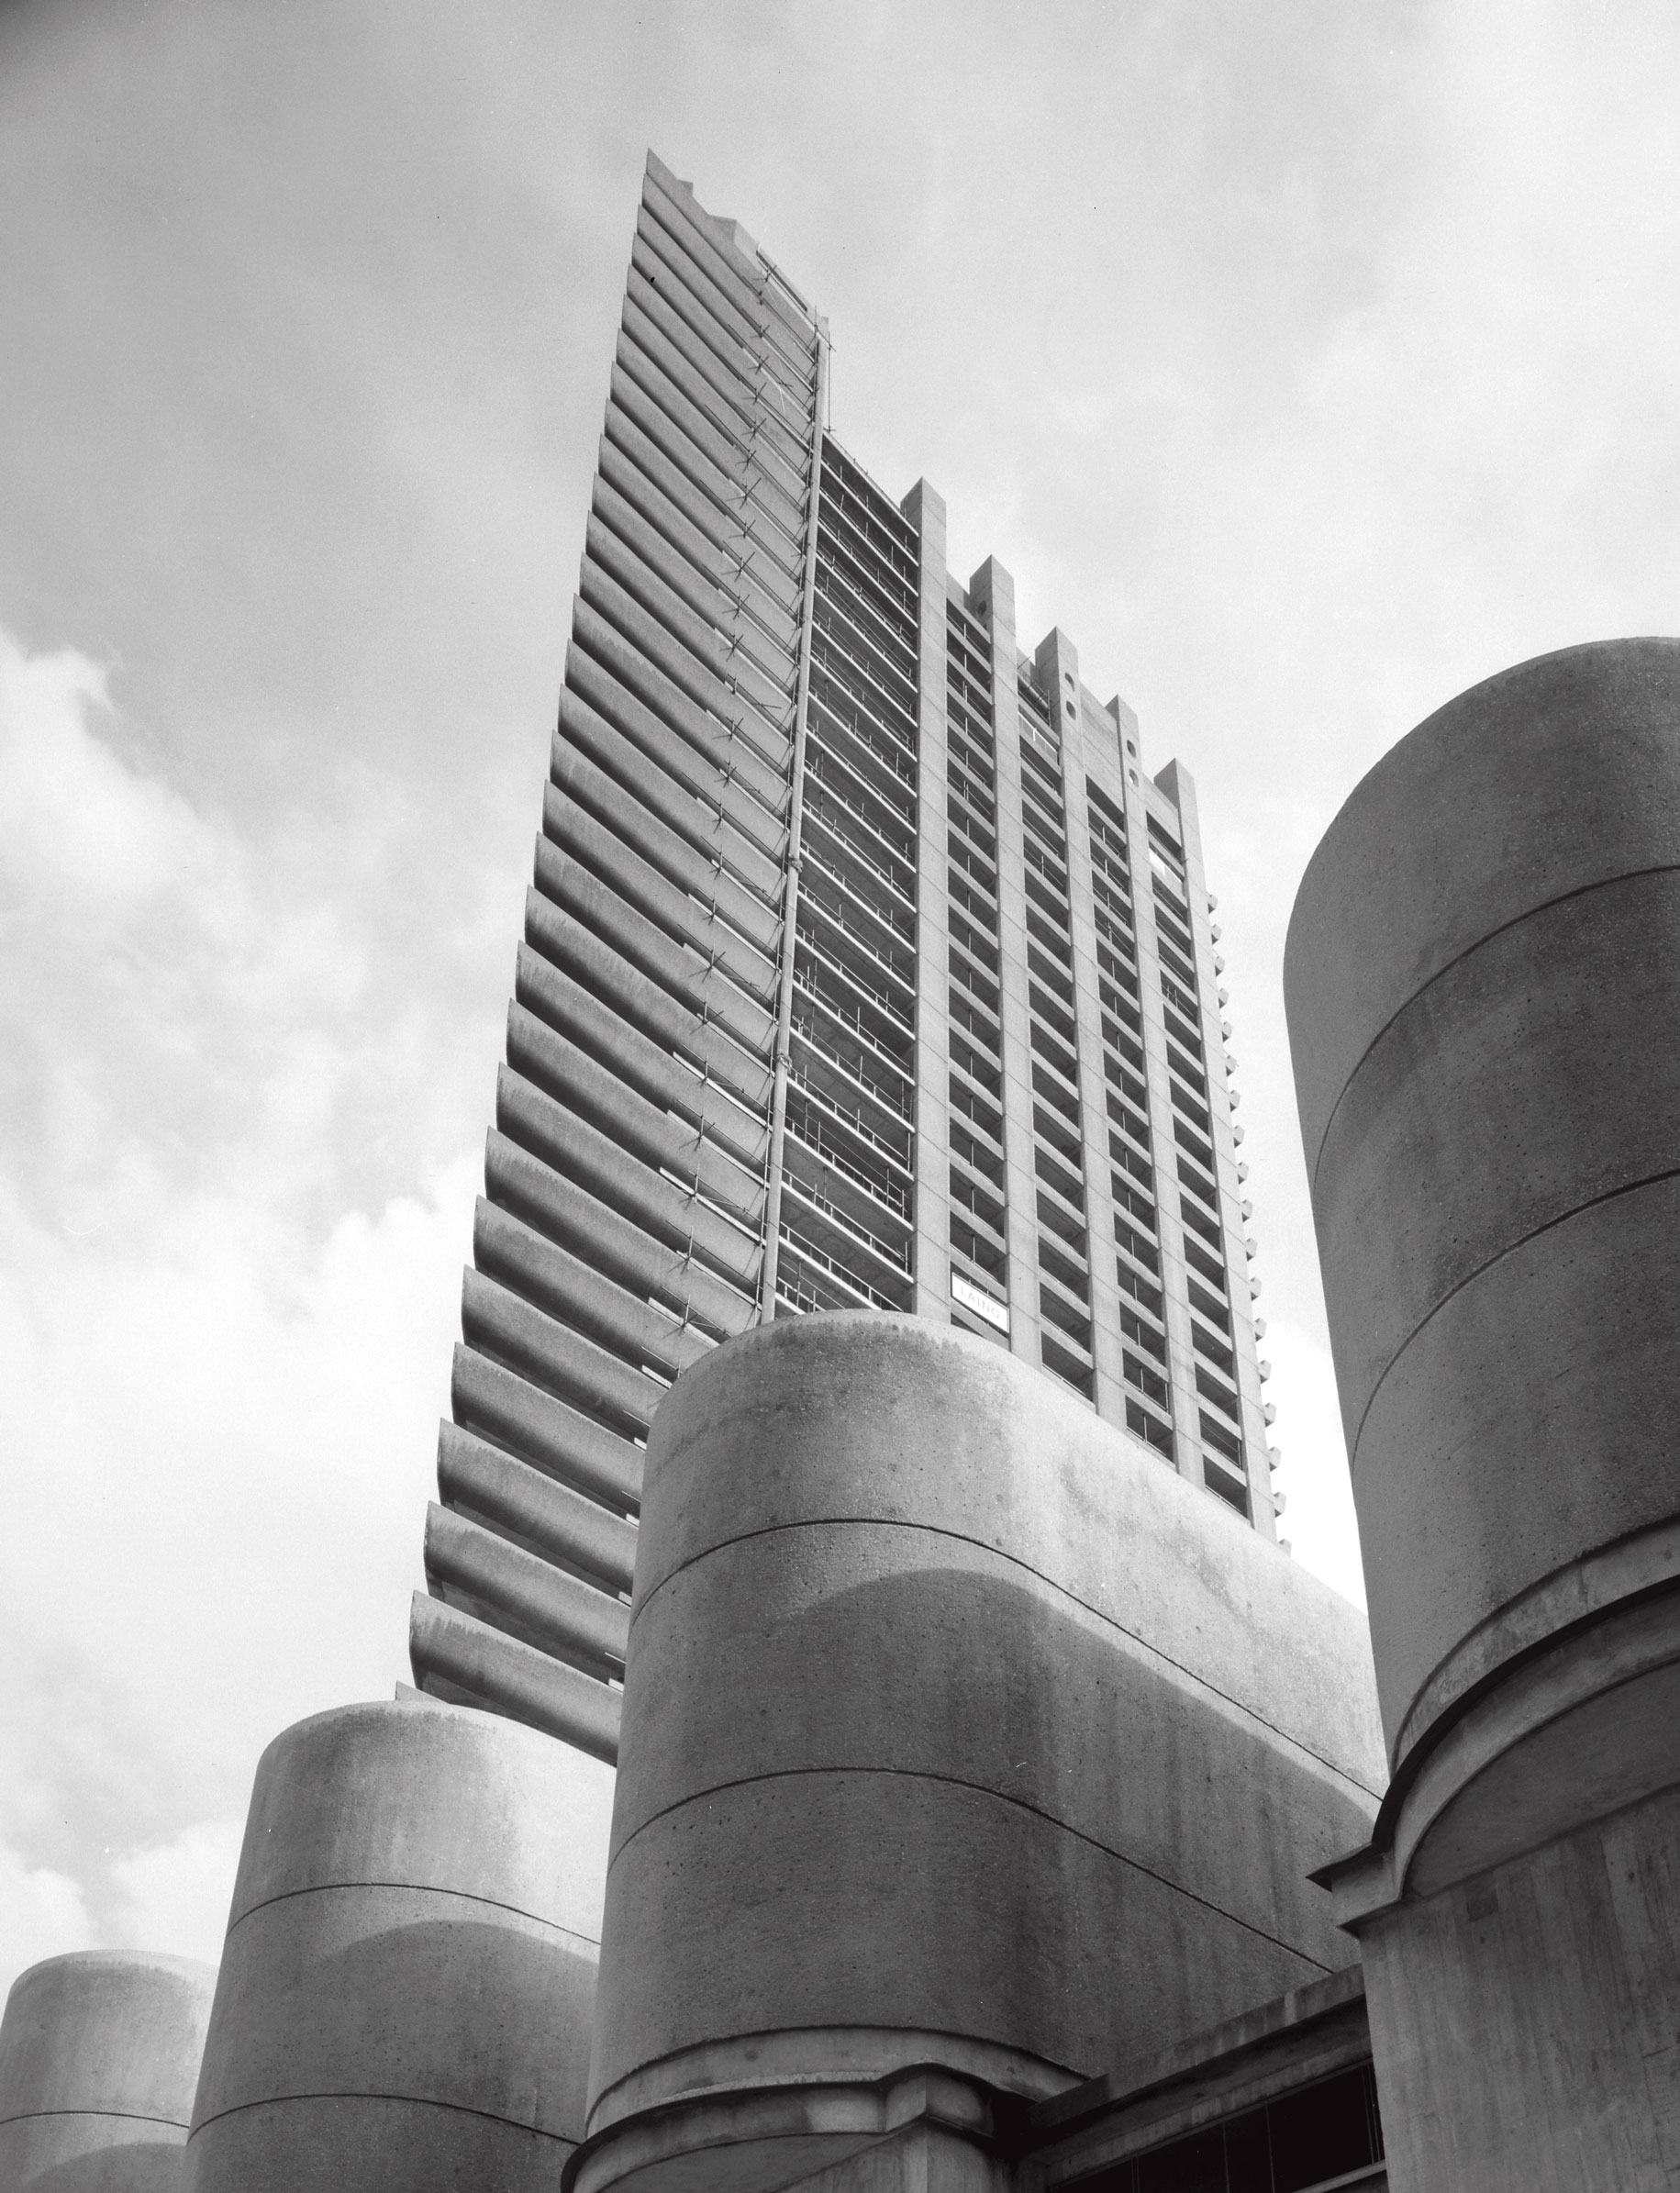 The Barbican as featured in Atlas of Brutalist Architecture